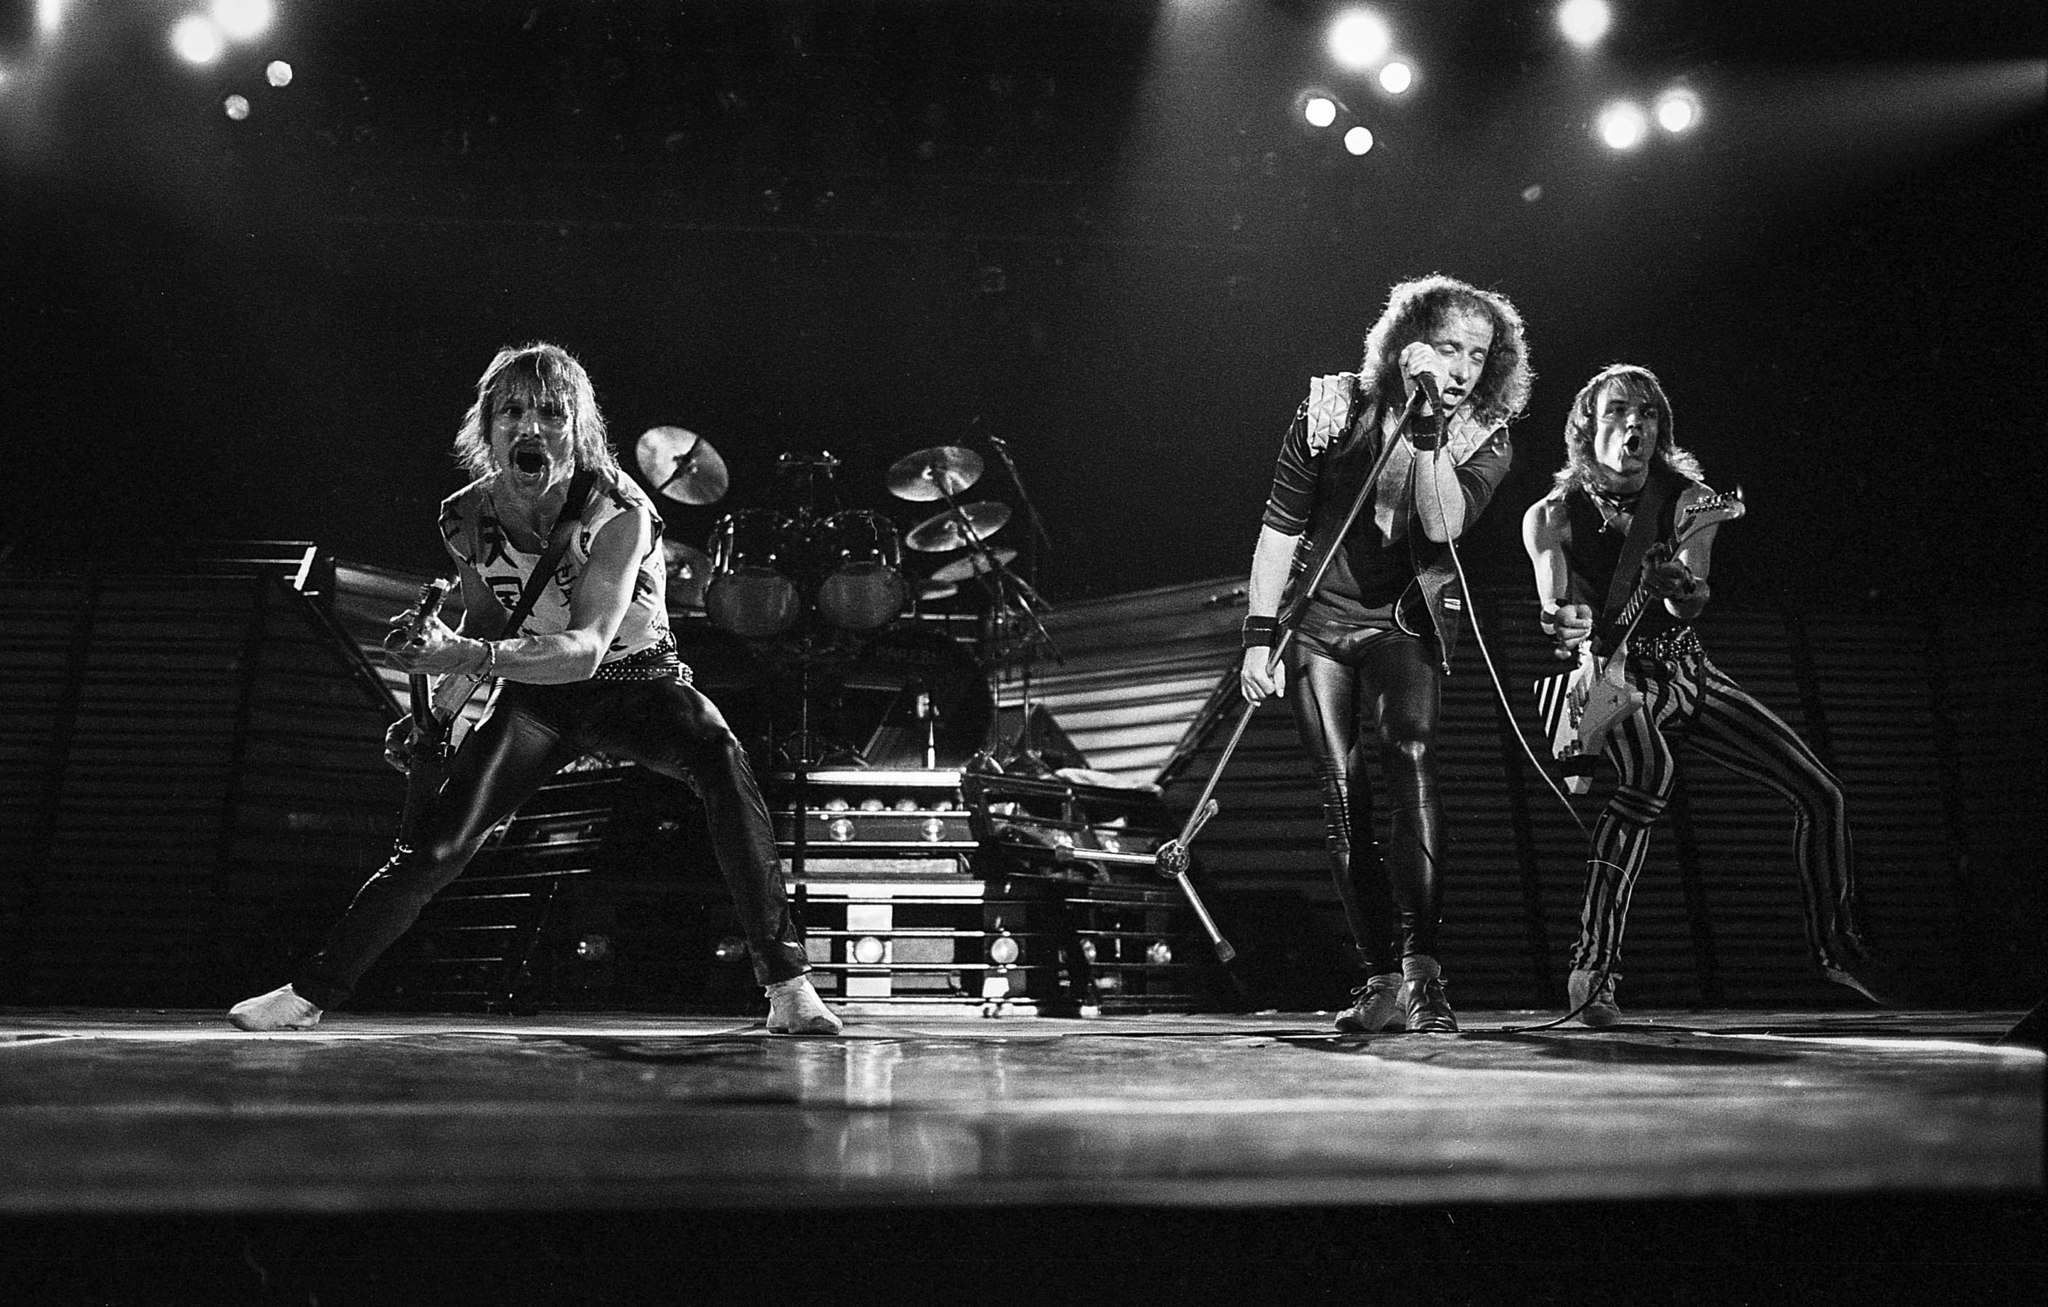 April 25, 1984: The Scorpions in concert at the Forum in Inglewood. This photo is from the Los Angel